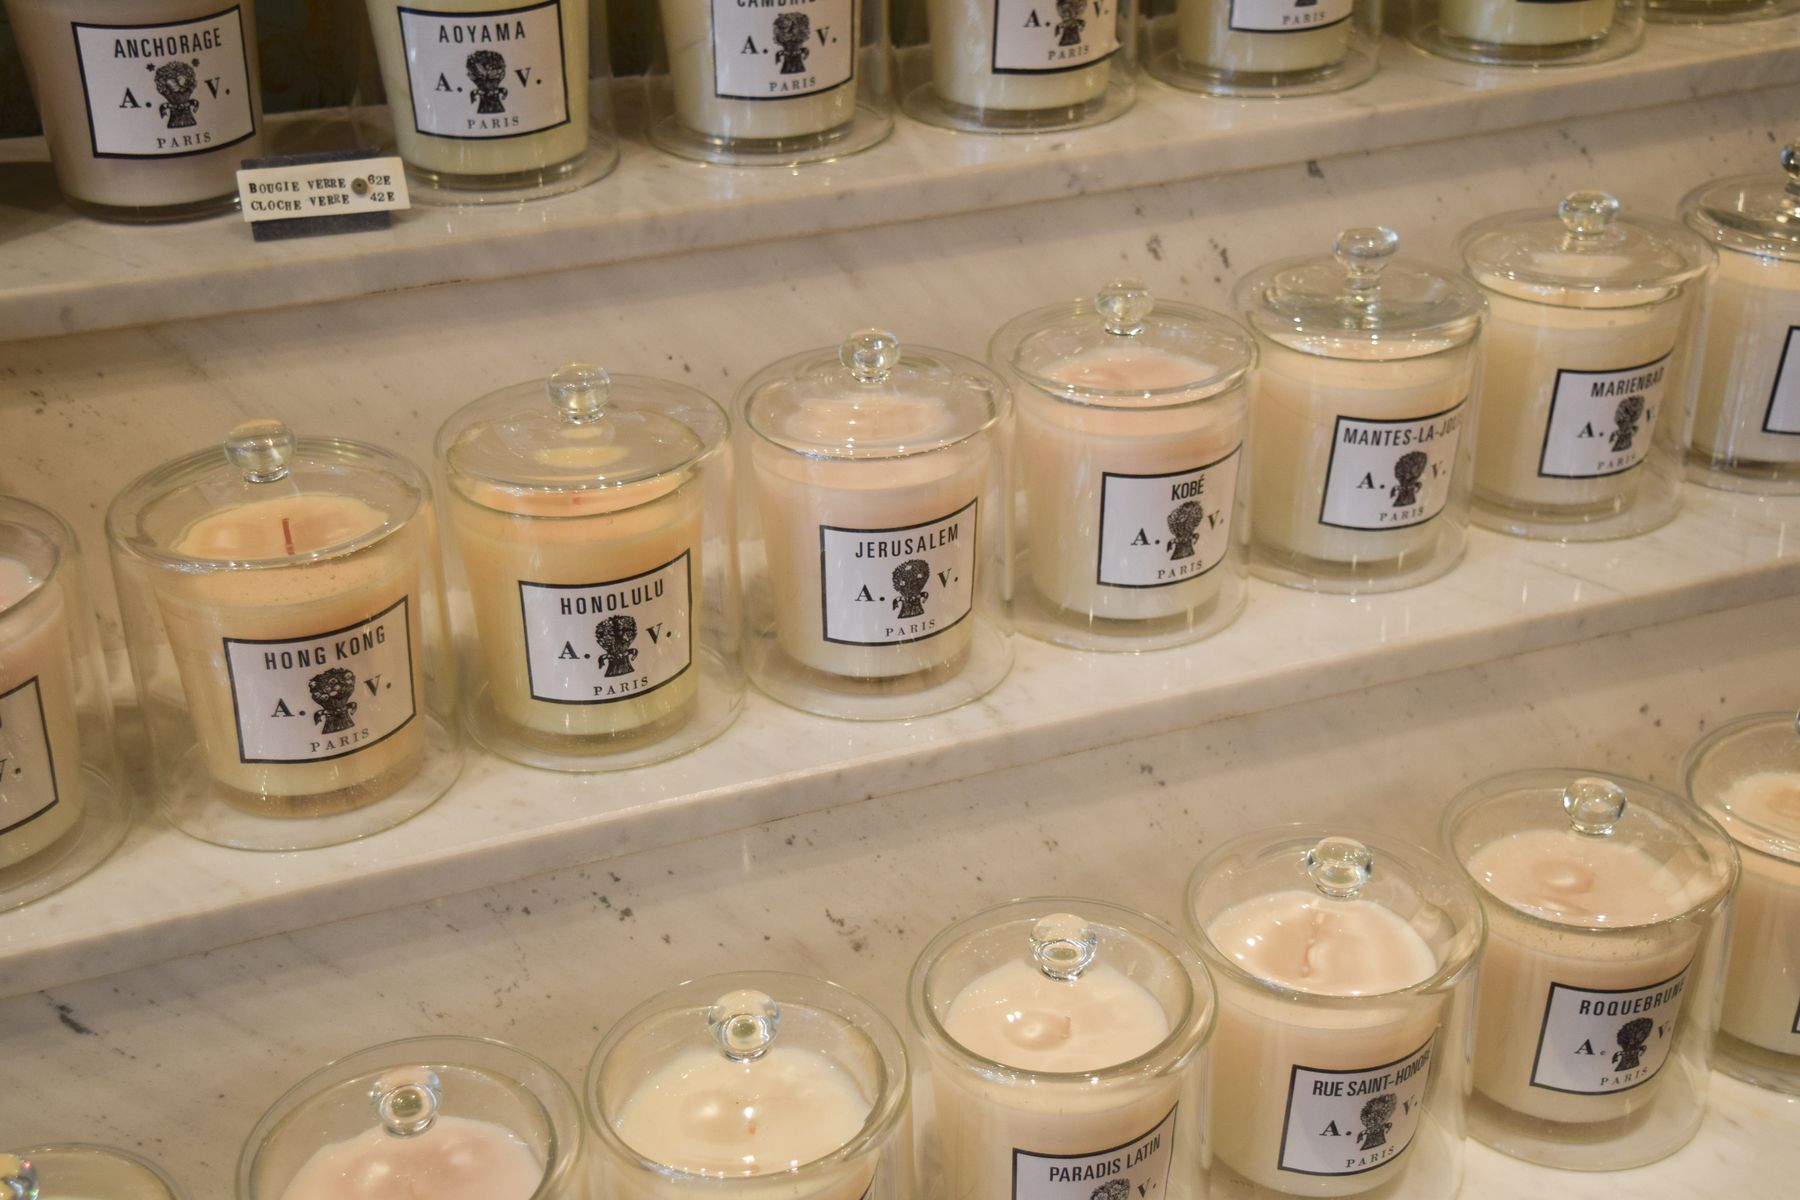 Astier de Villatte Candles, Paris